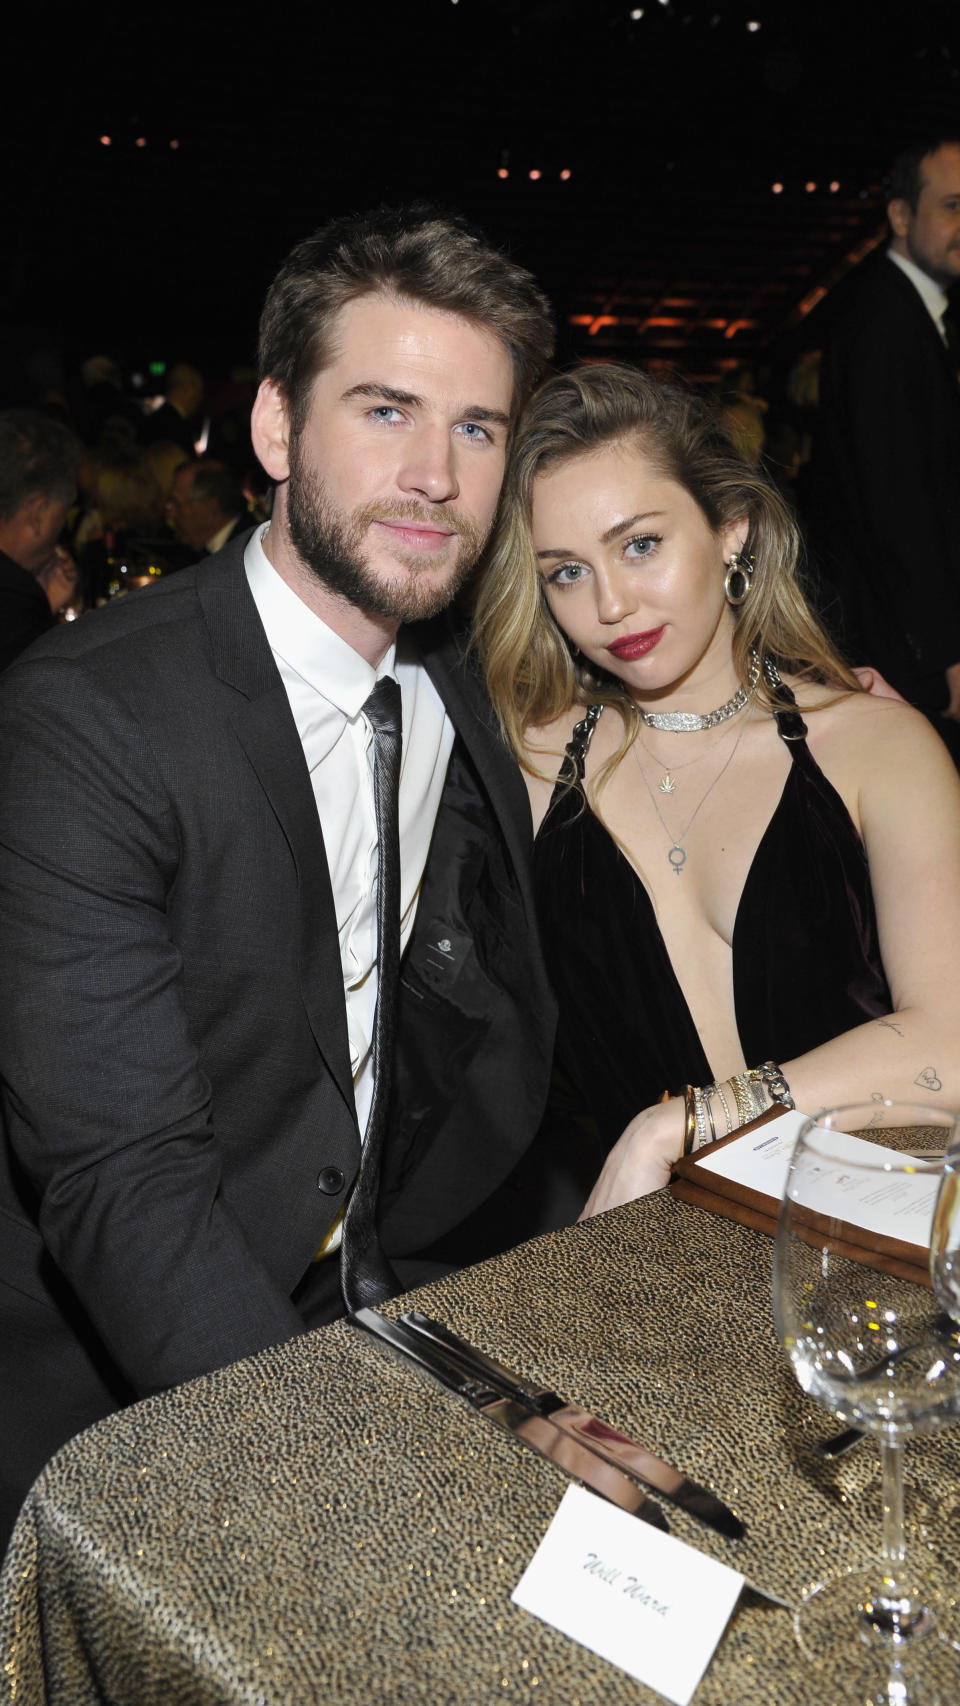 Miley Cyrus has opened up about what marriage is like as a 'queer person'. Photo: Getty Images